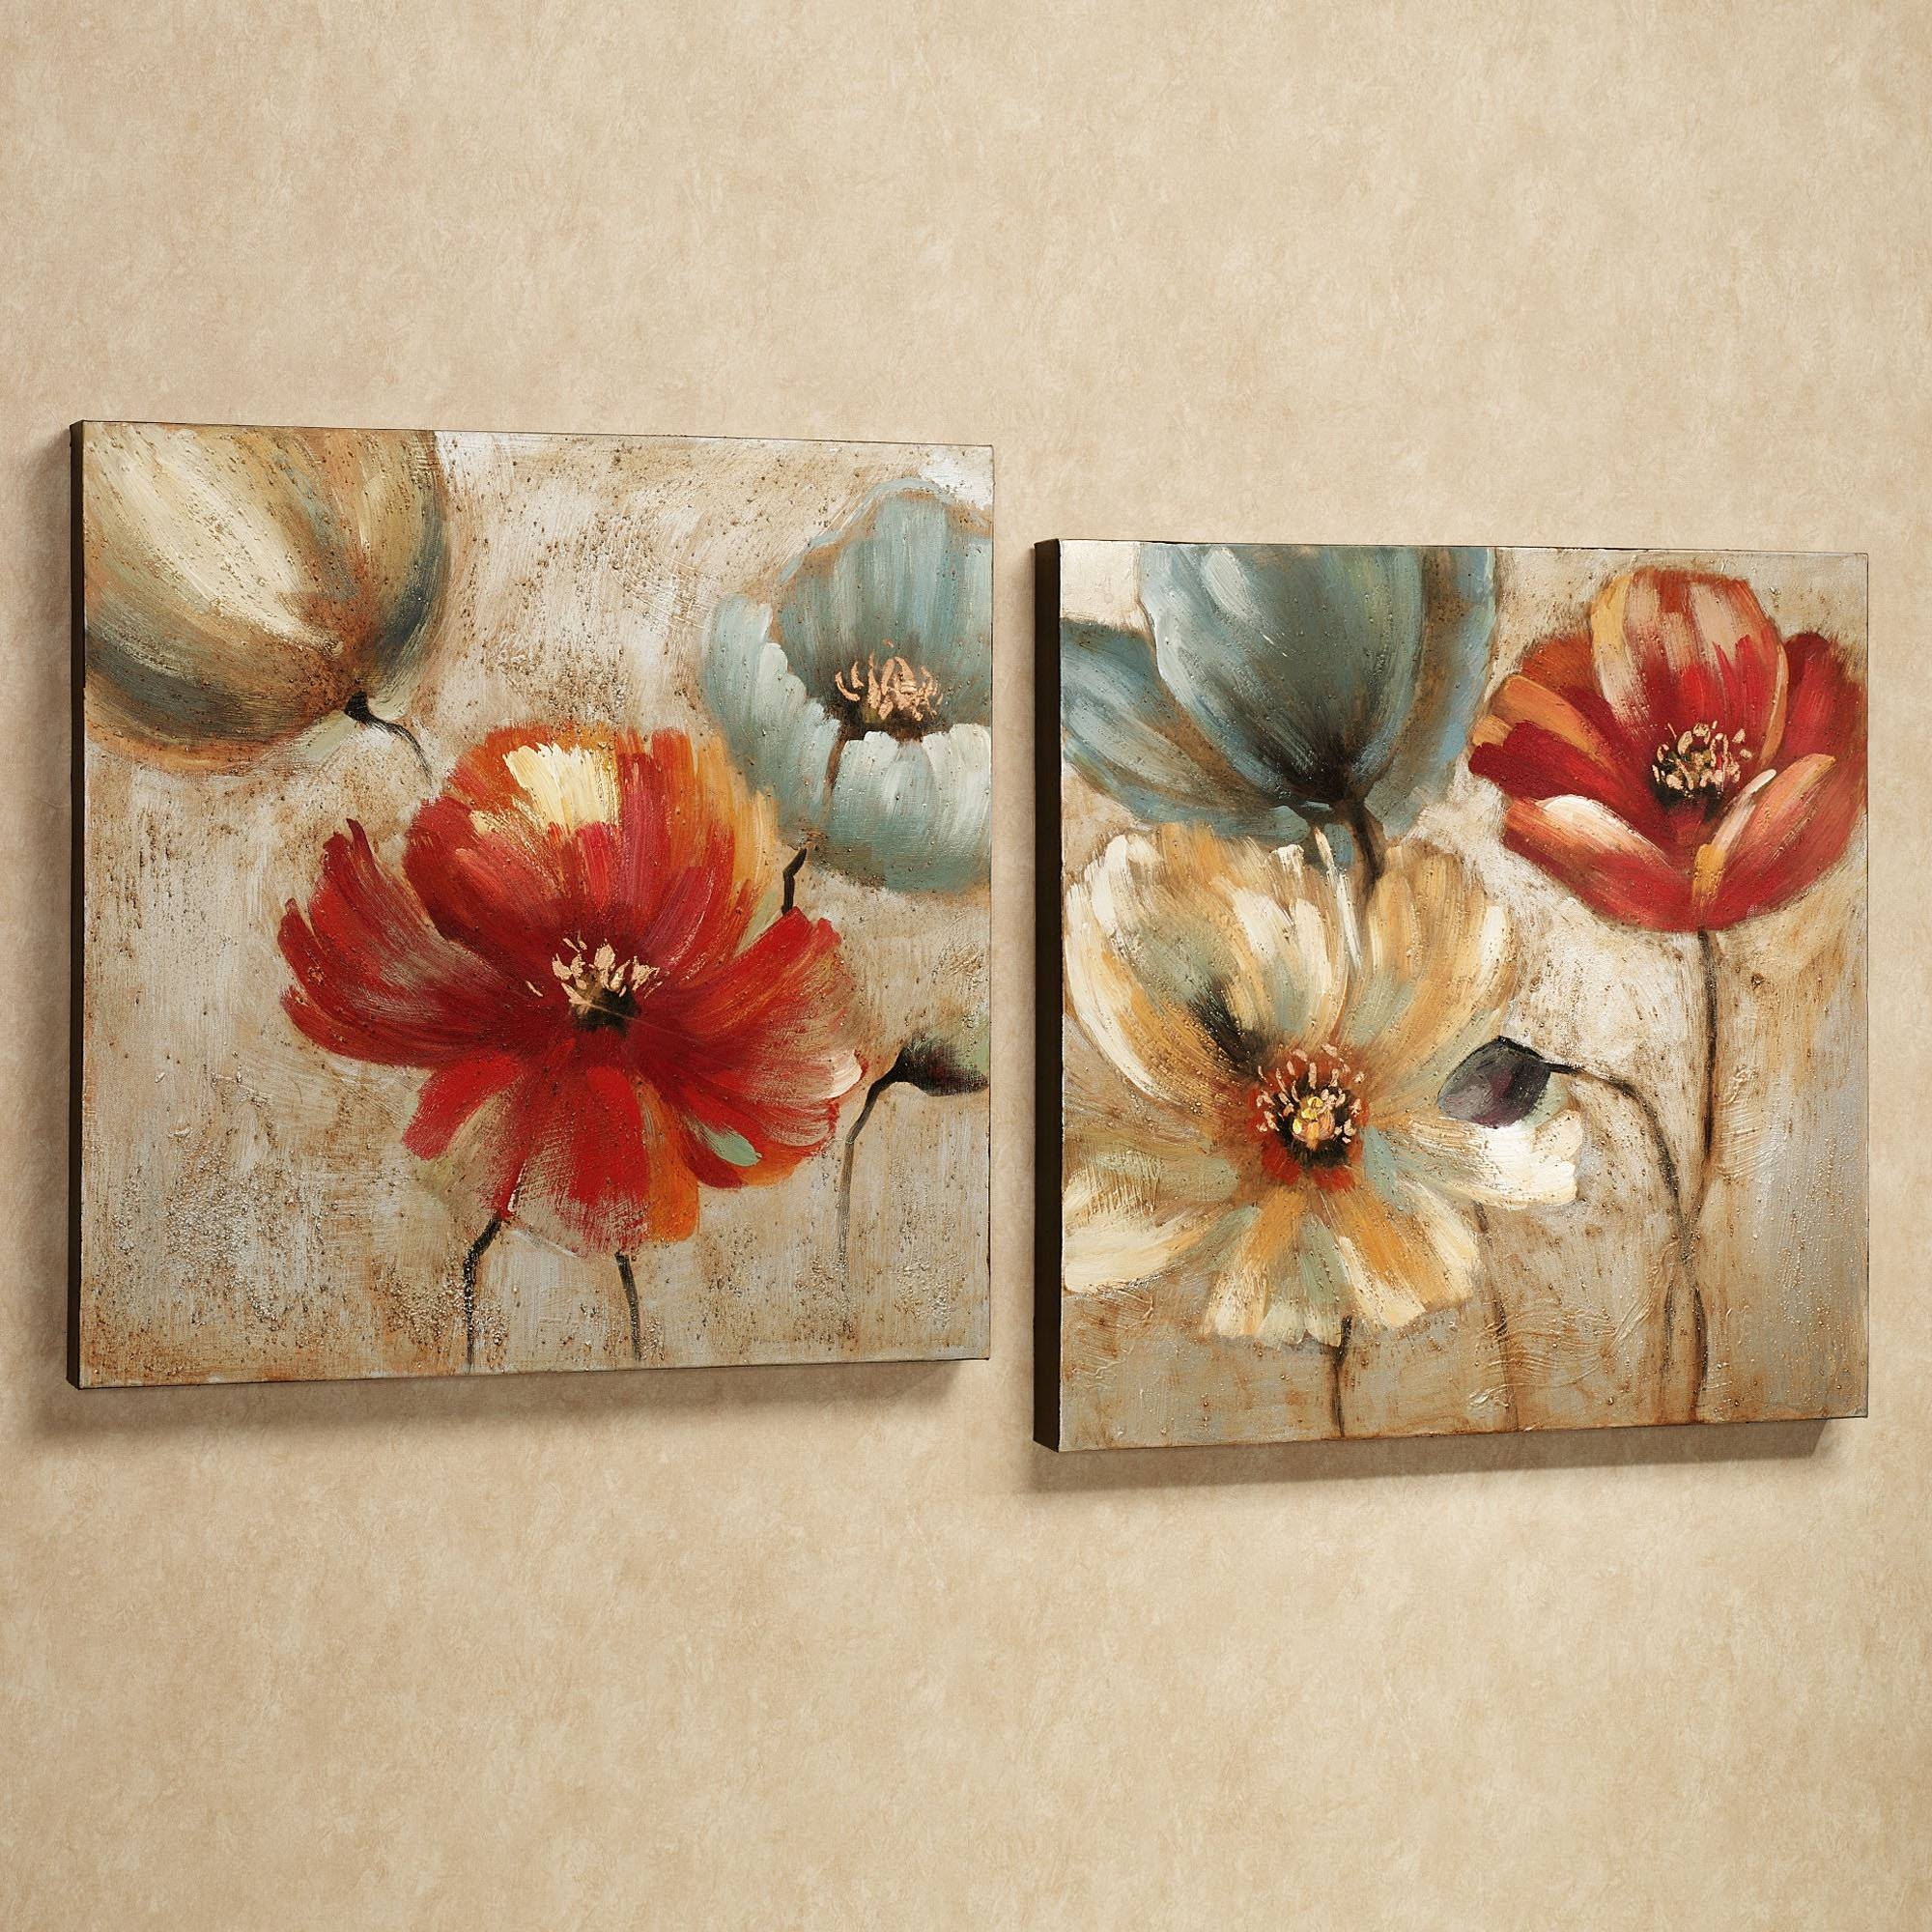 Wall Art Designs: Awesome Floral Wall Art Canvas Floral Wall Art Pertaining To Most Recent Cheap Wall Art Canvas Sets (View 14 of 15)